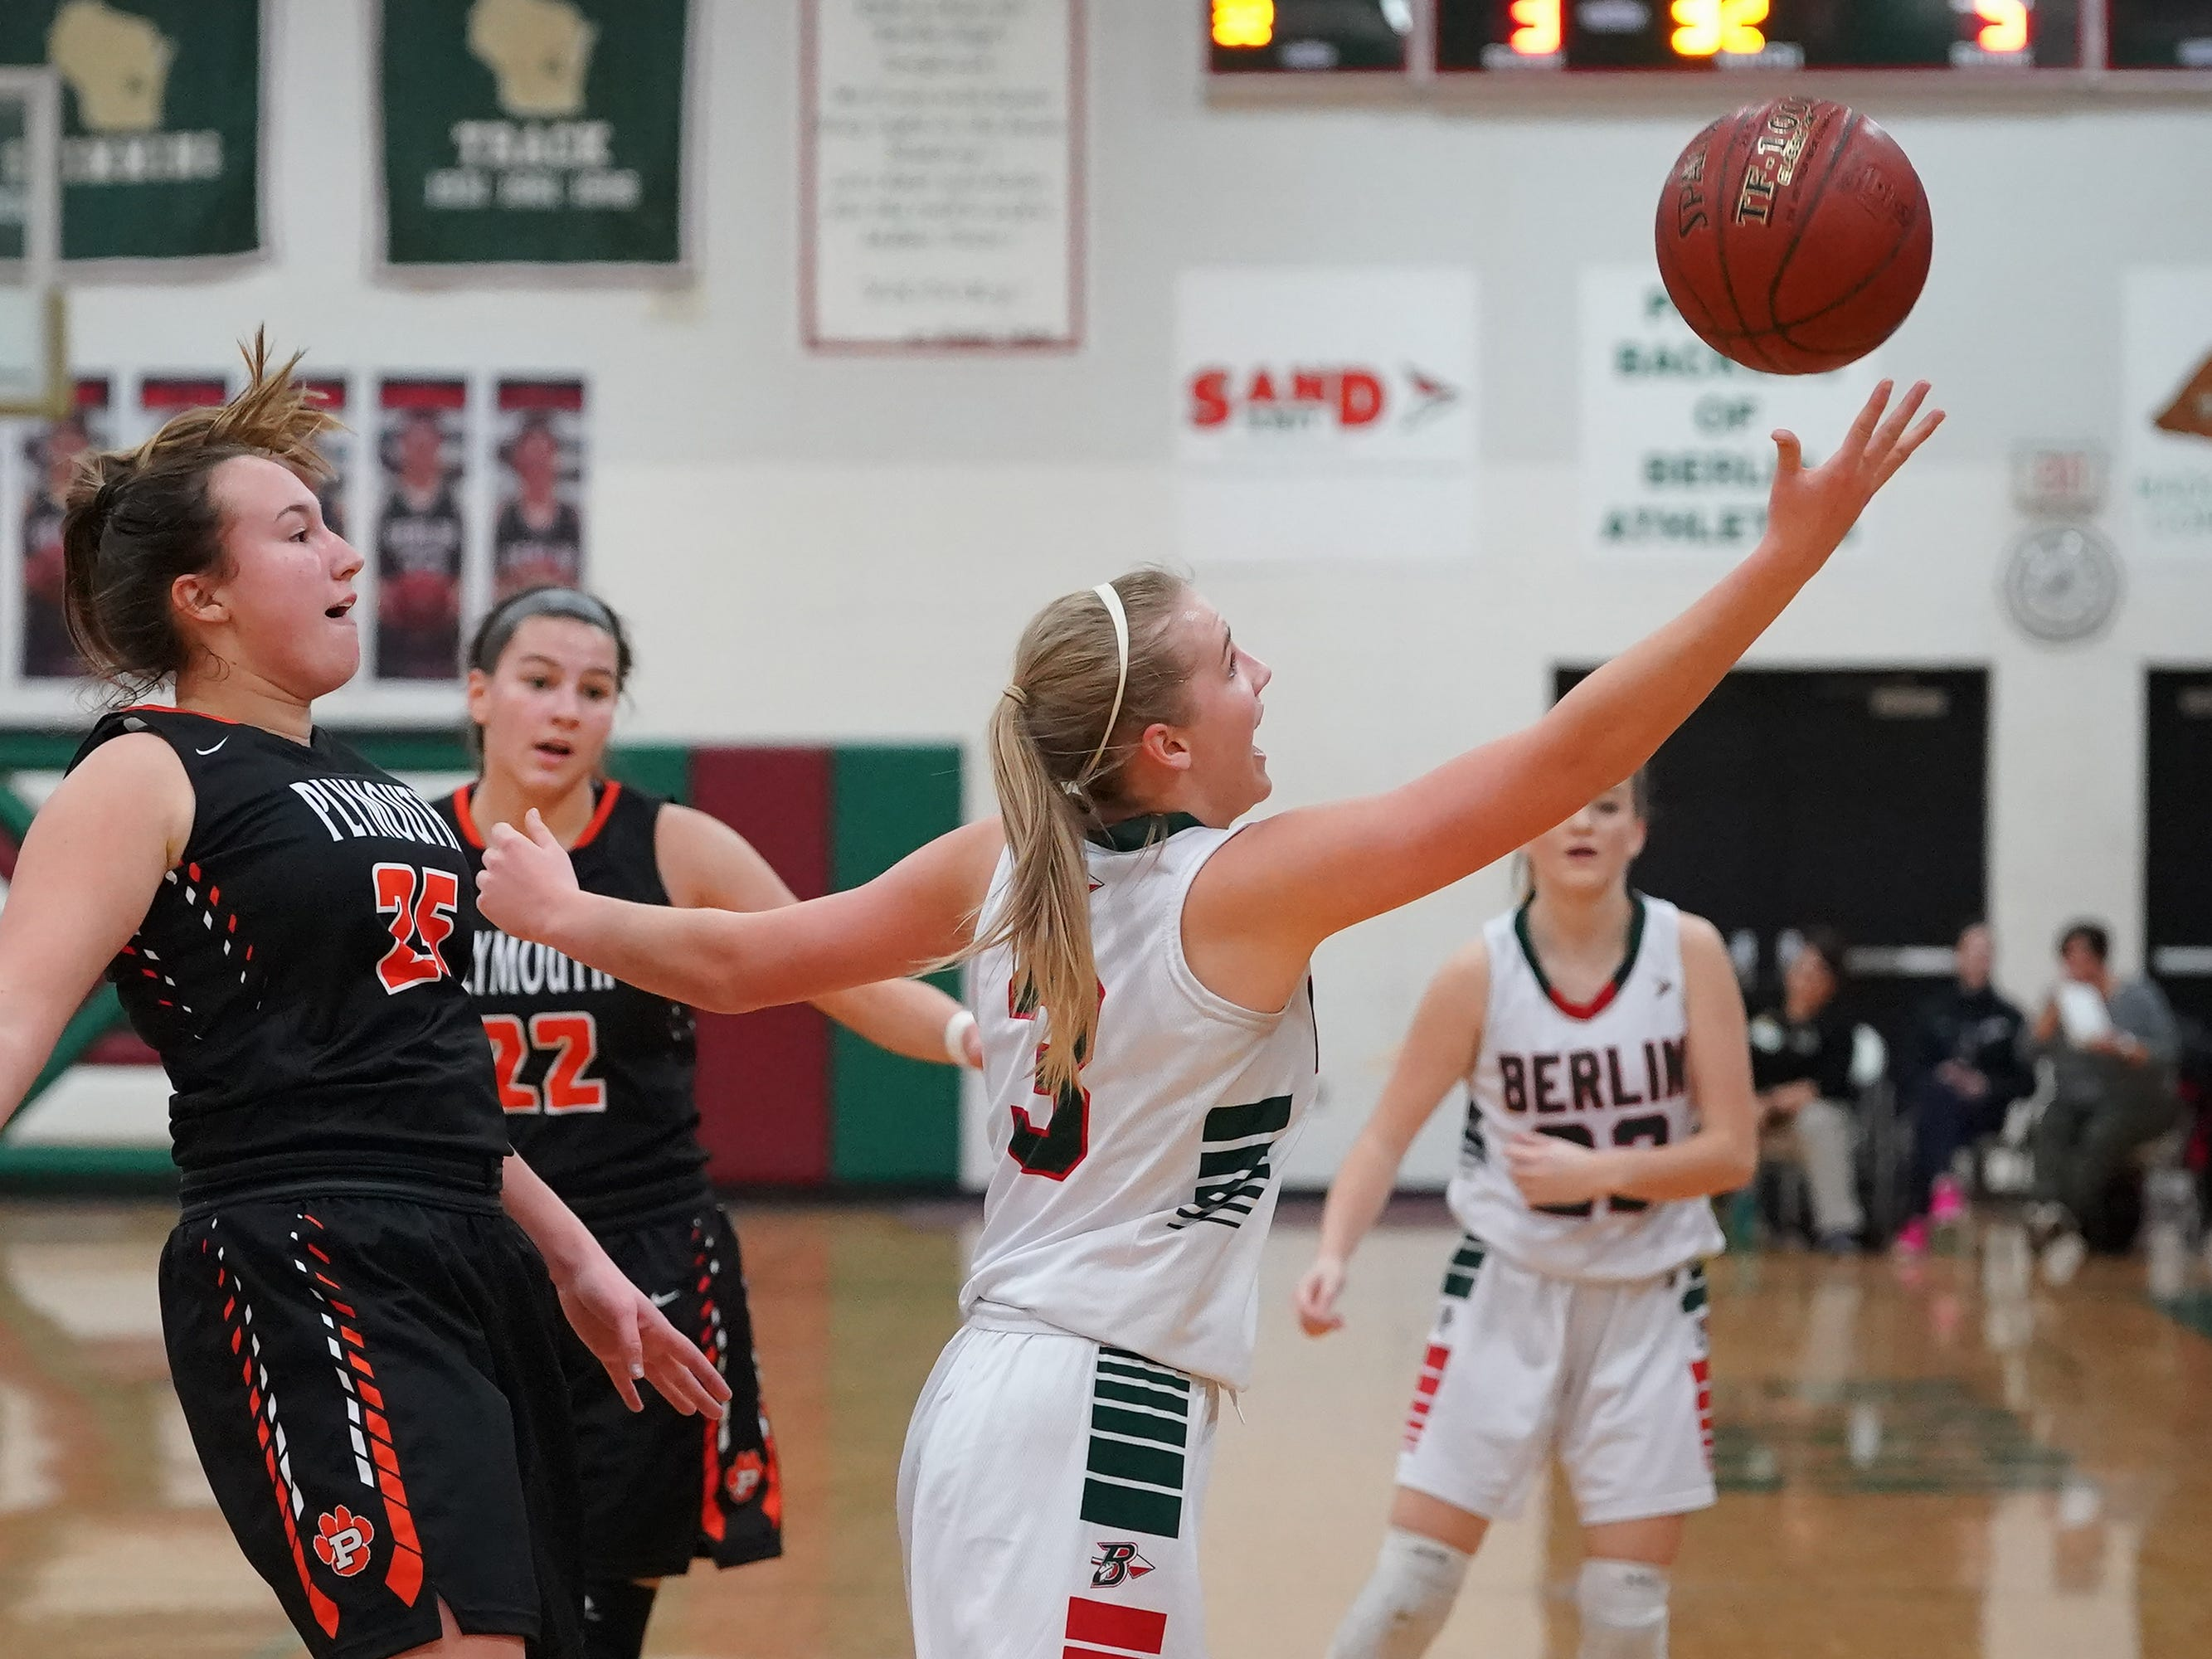 Myah Jodarski (3) of Berlin stretches for a pass. The Berlin Indians hosted the Plymouth Panthers in an East Central Conference basketball game Thursday evening, December 13, 2018.